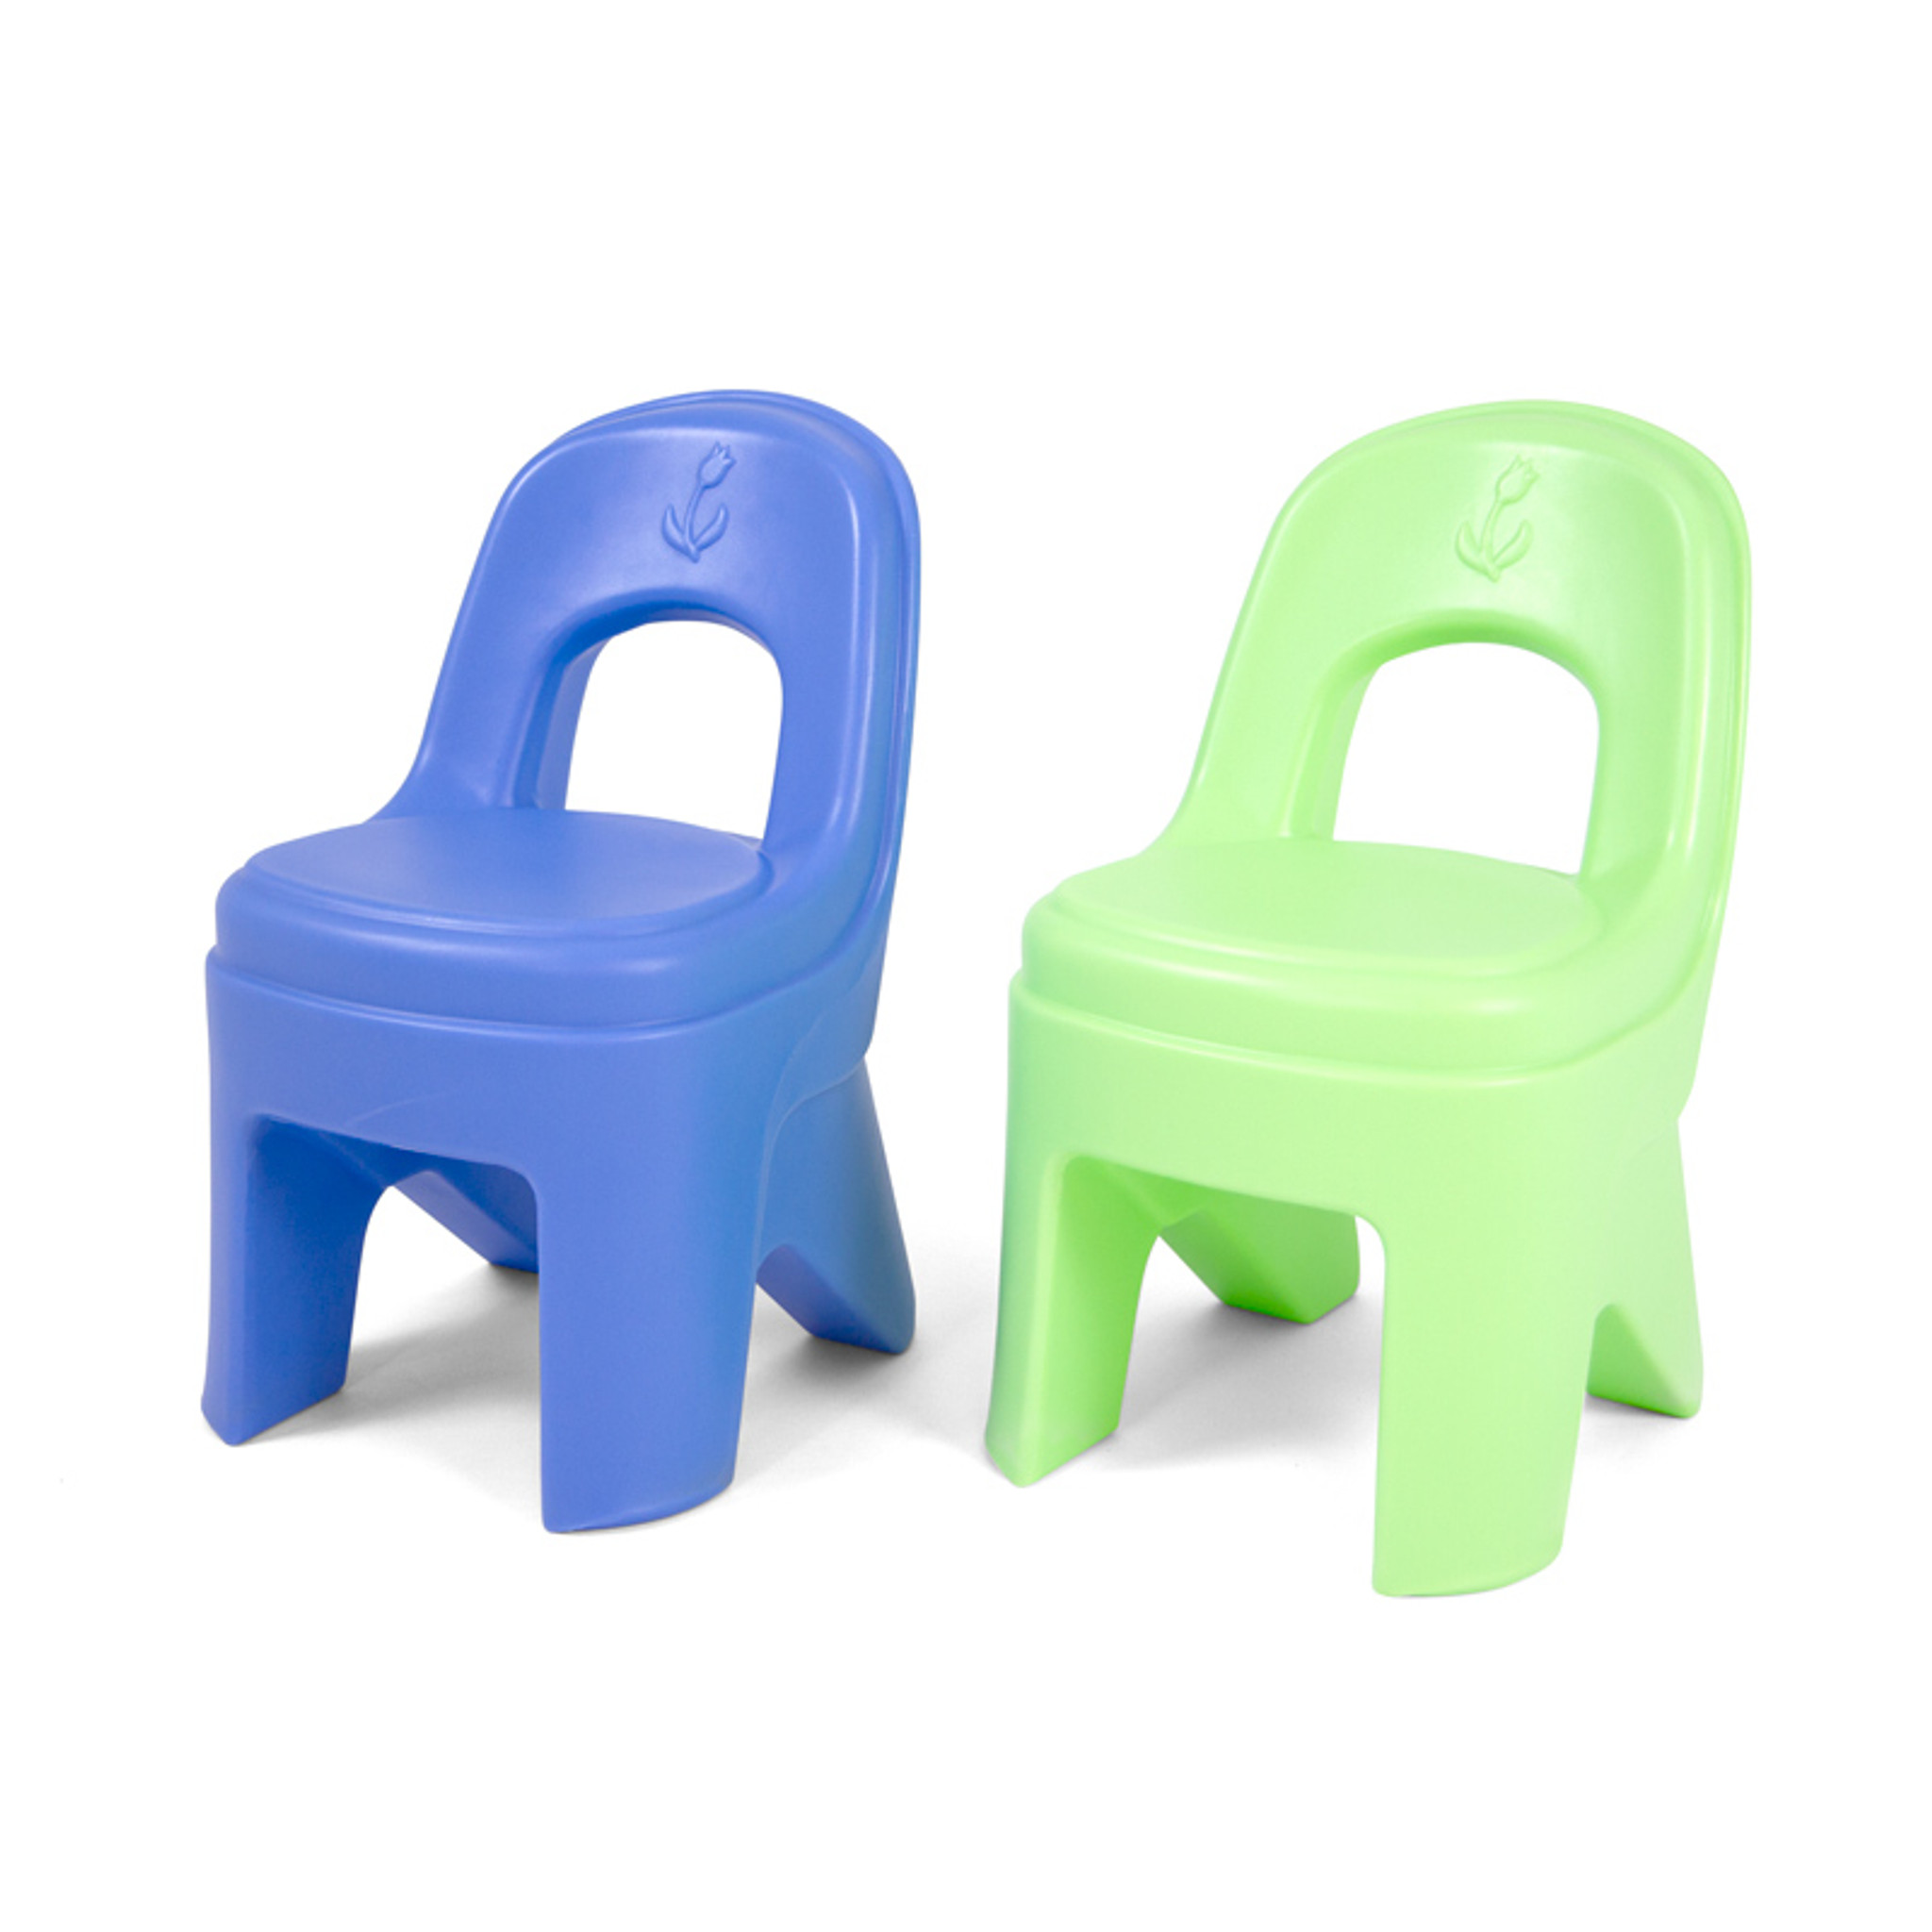 Prime Play Around Chairs Periwinkle Lime 2 Pack Theyellowbook Wood Chair Design Ideas Theyellowbookinfo